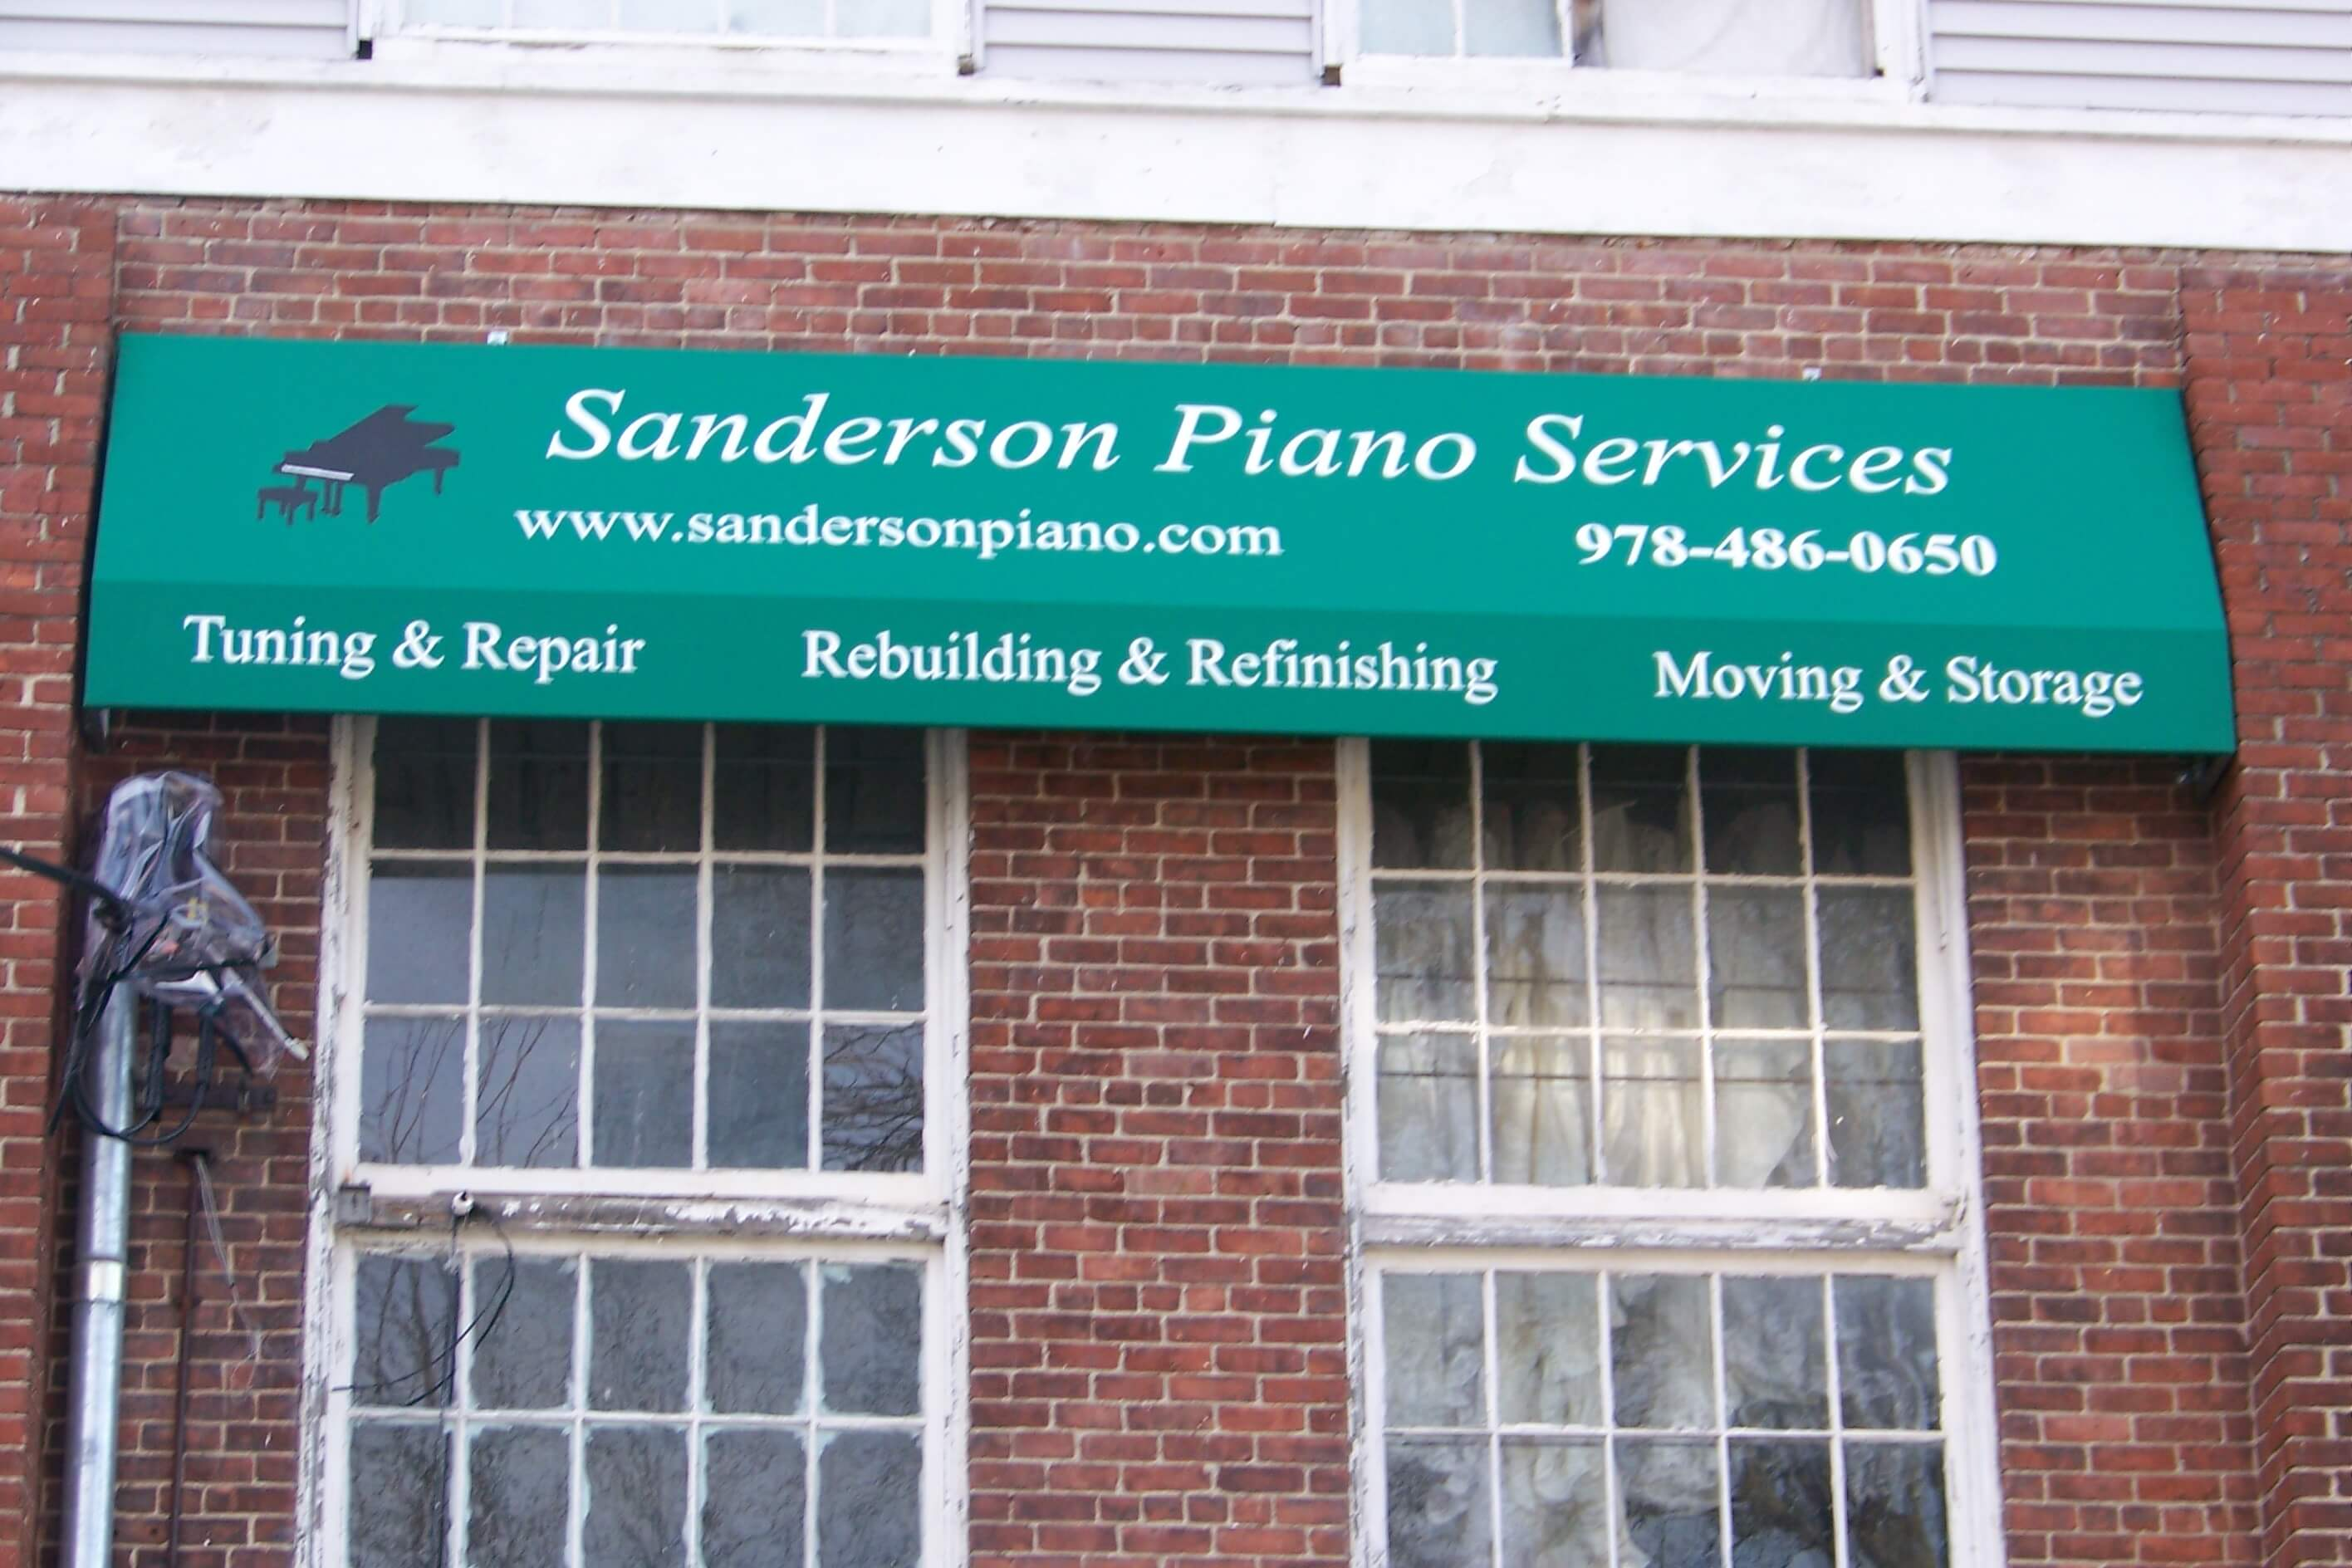 Fabric Awning with Painted Graphics - Sanderson Piano Services